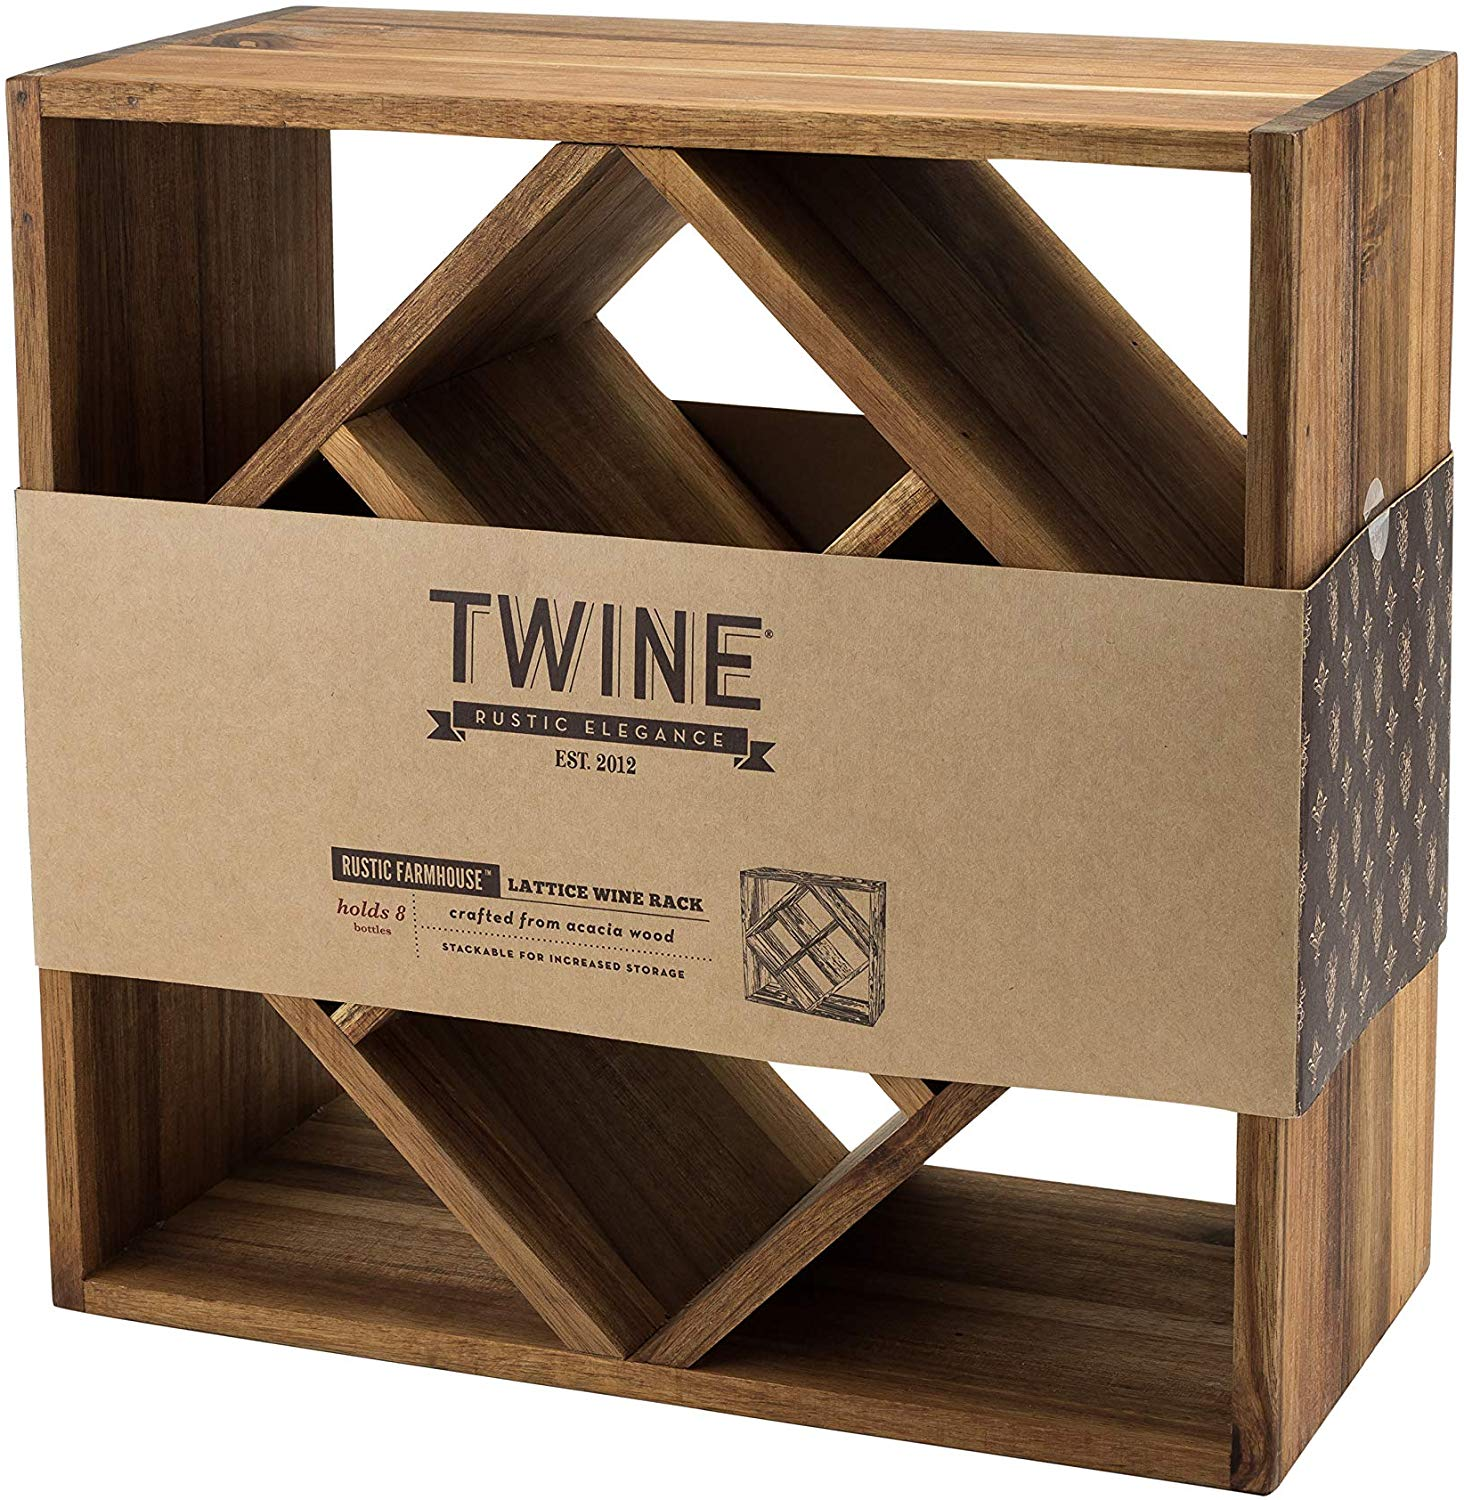 Acacia Wood Lattice Wine Rack by Twine #TNF